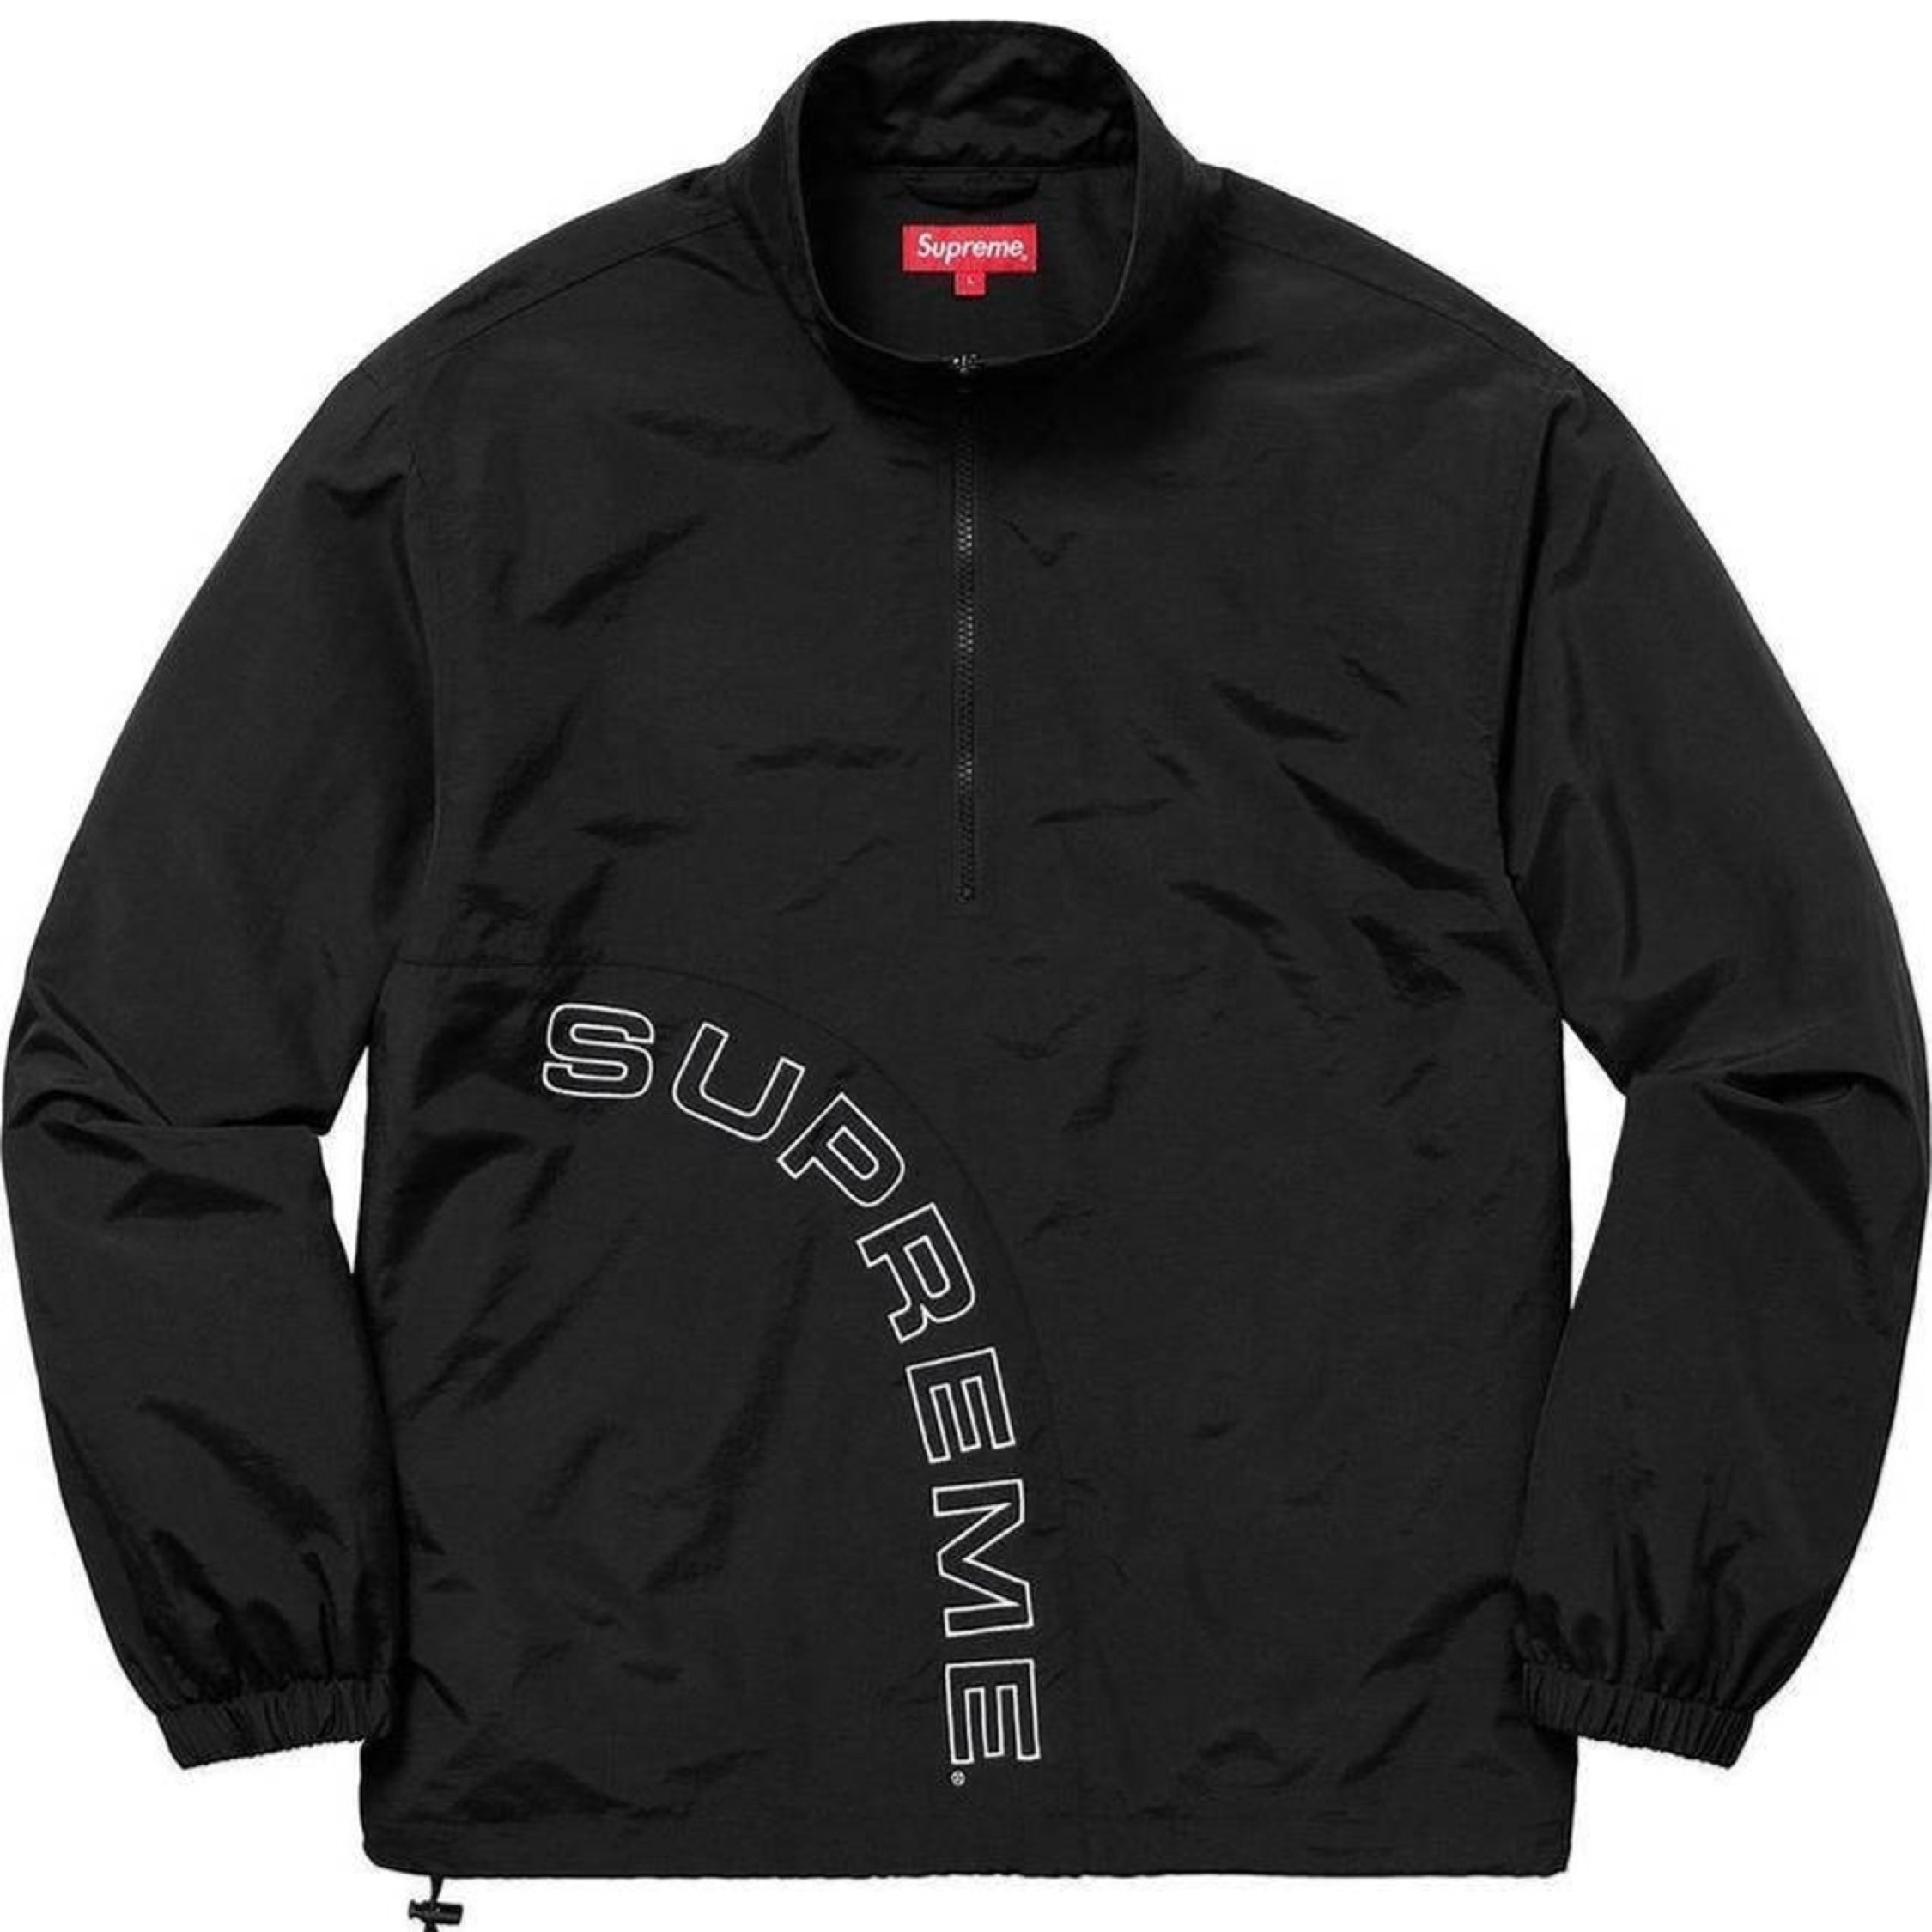 Supreme Ss18 Corner Arc Half Zip Pullover Xl New